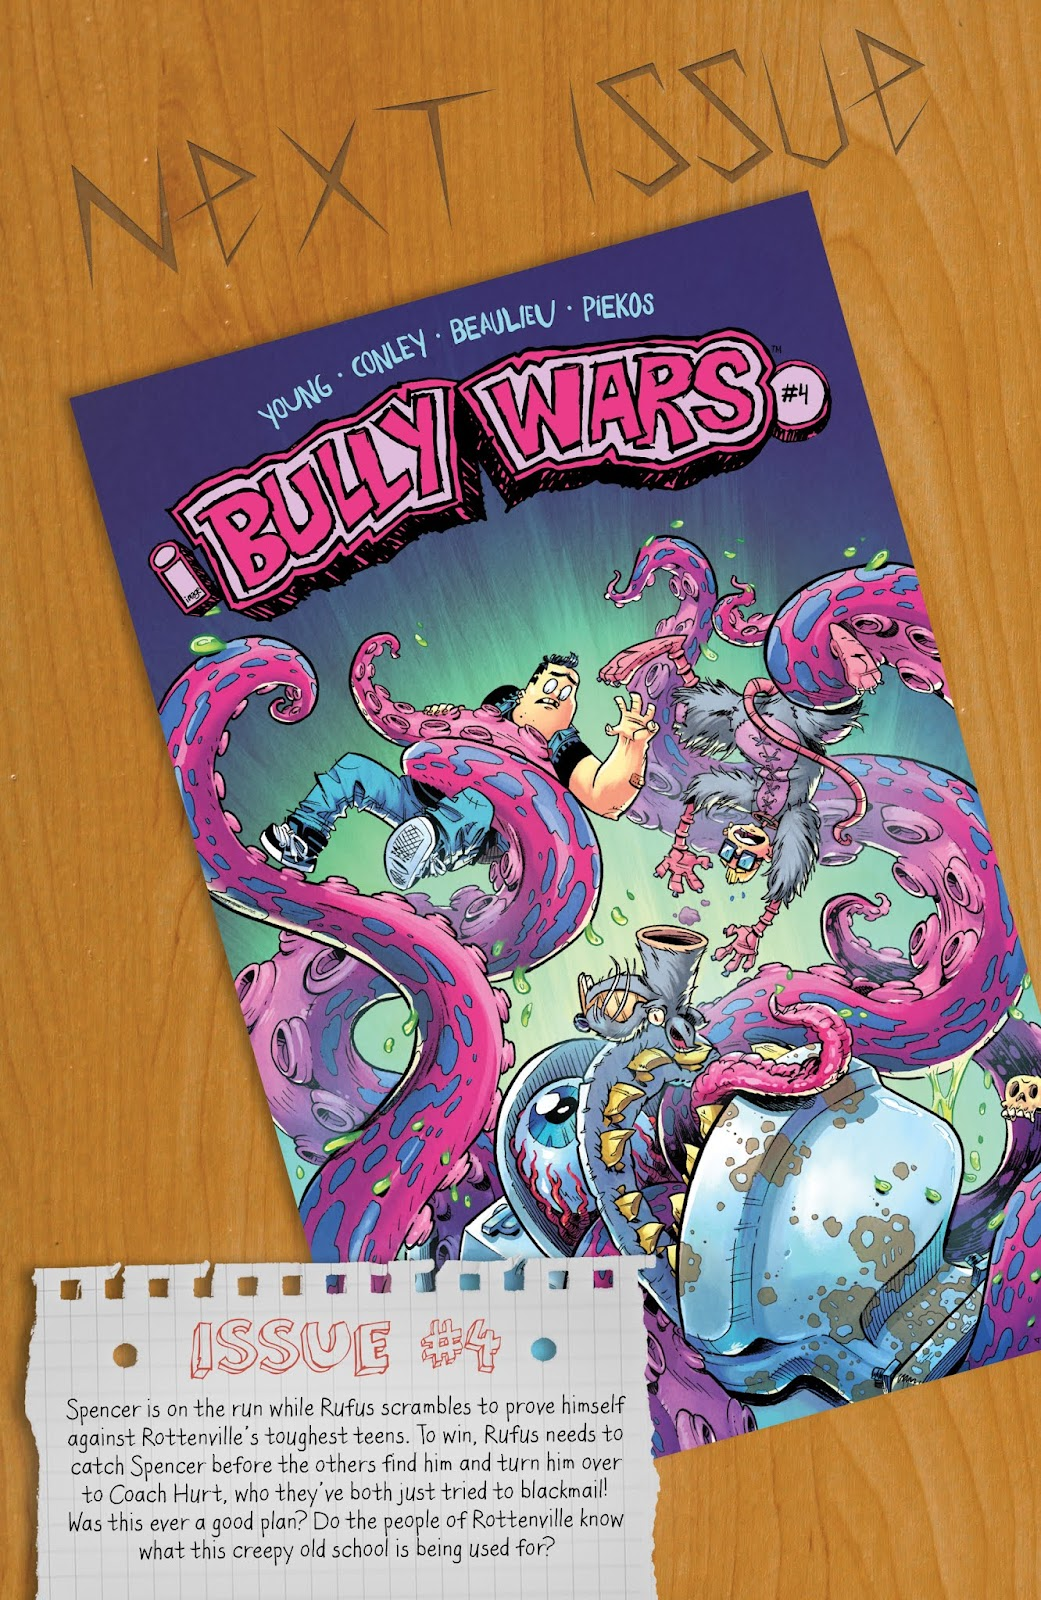 Read online Bully Wars comic -  Issue #3 - 22